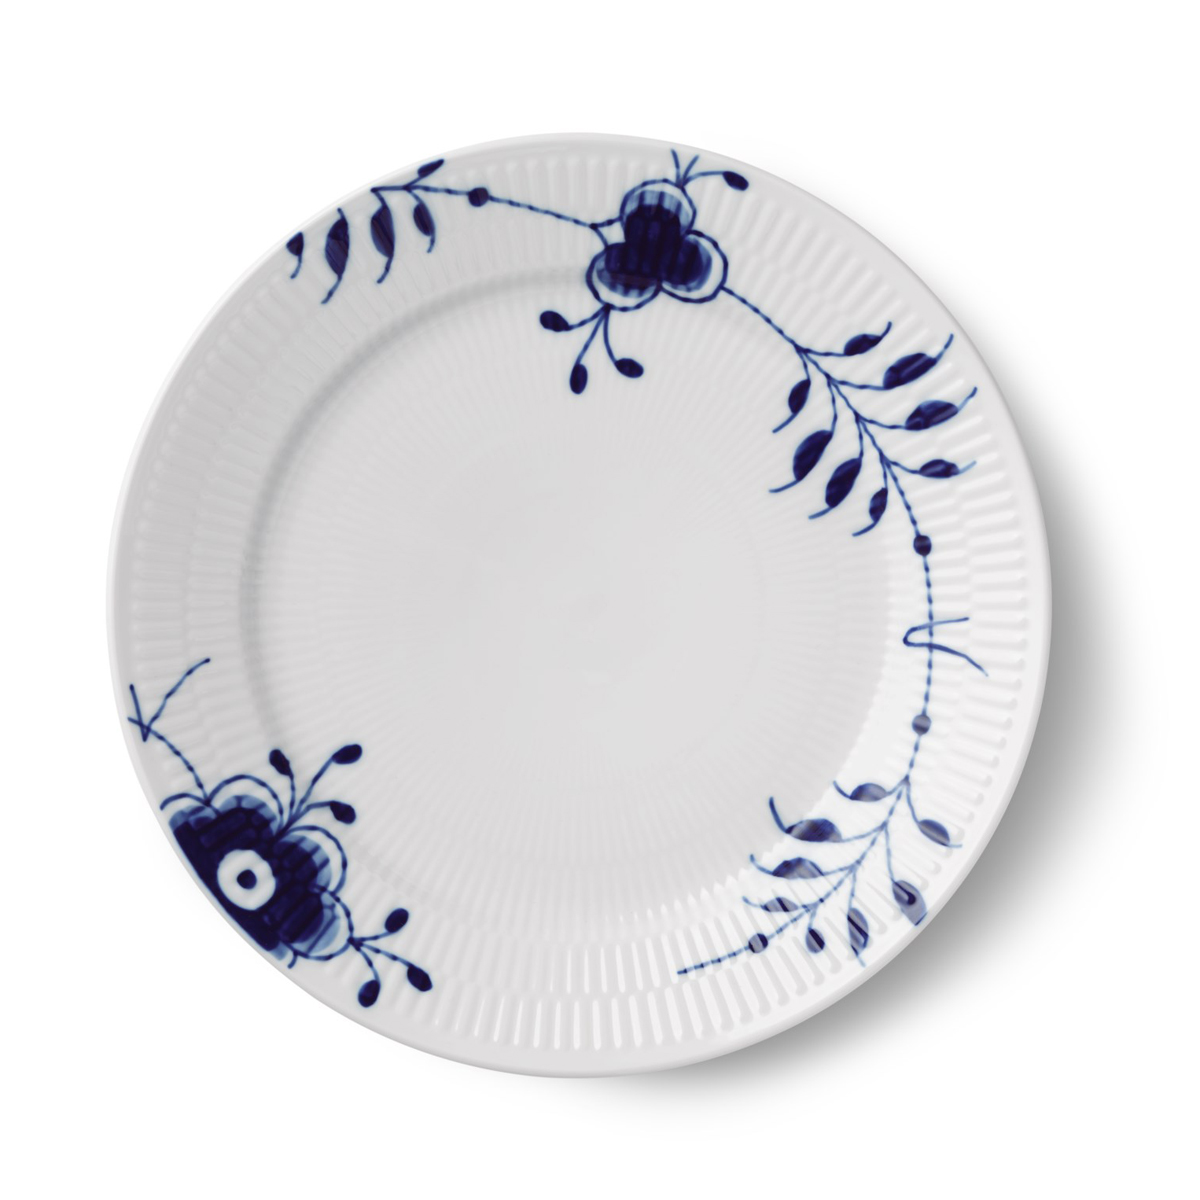 "Royal Copenhagen, Blue Fluted Mega Plate 10.75"" Special Edition"